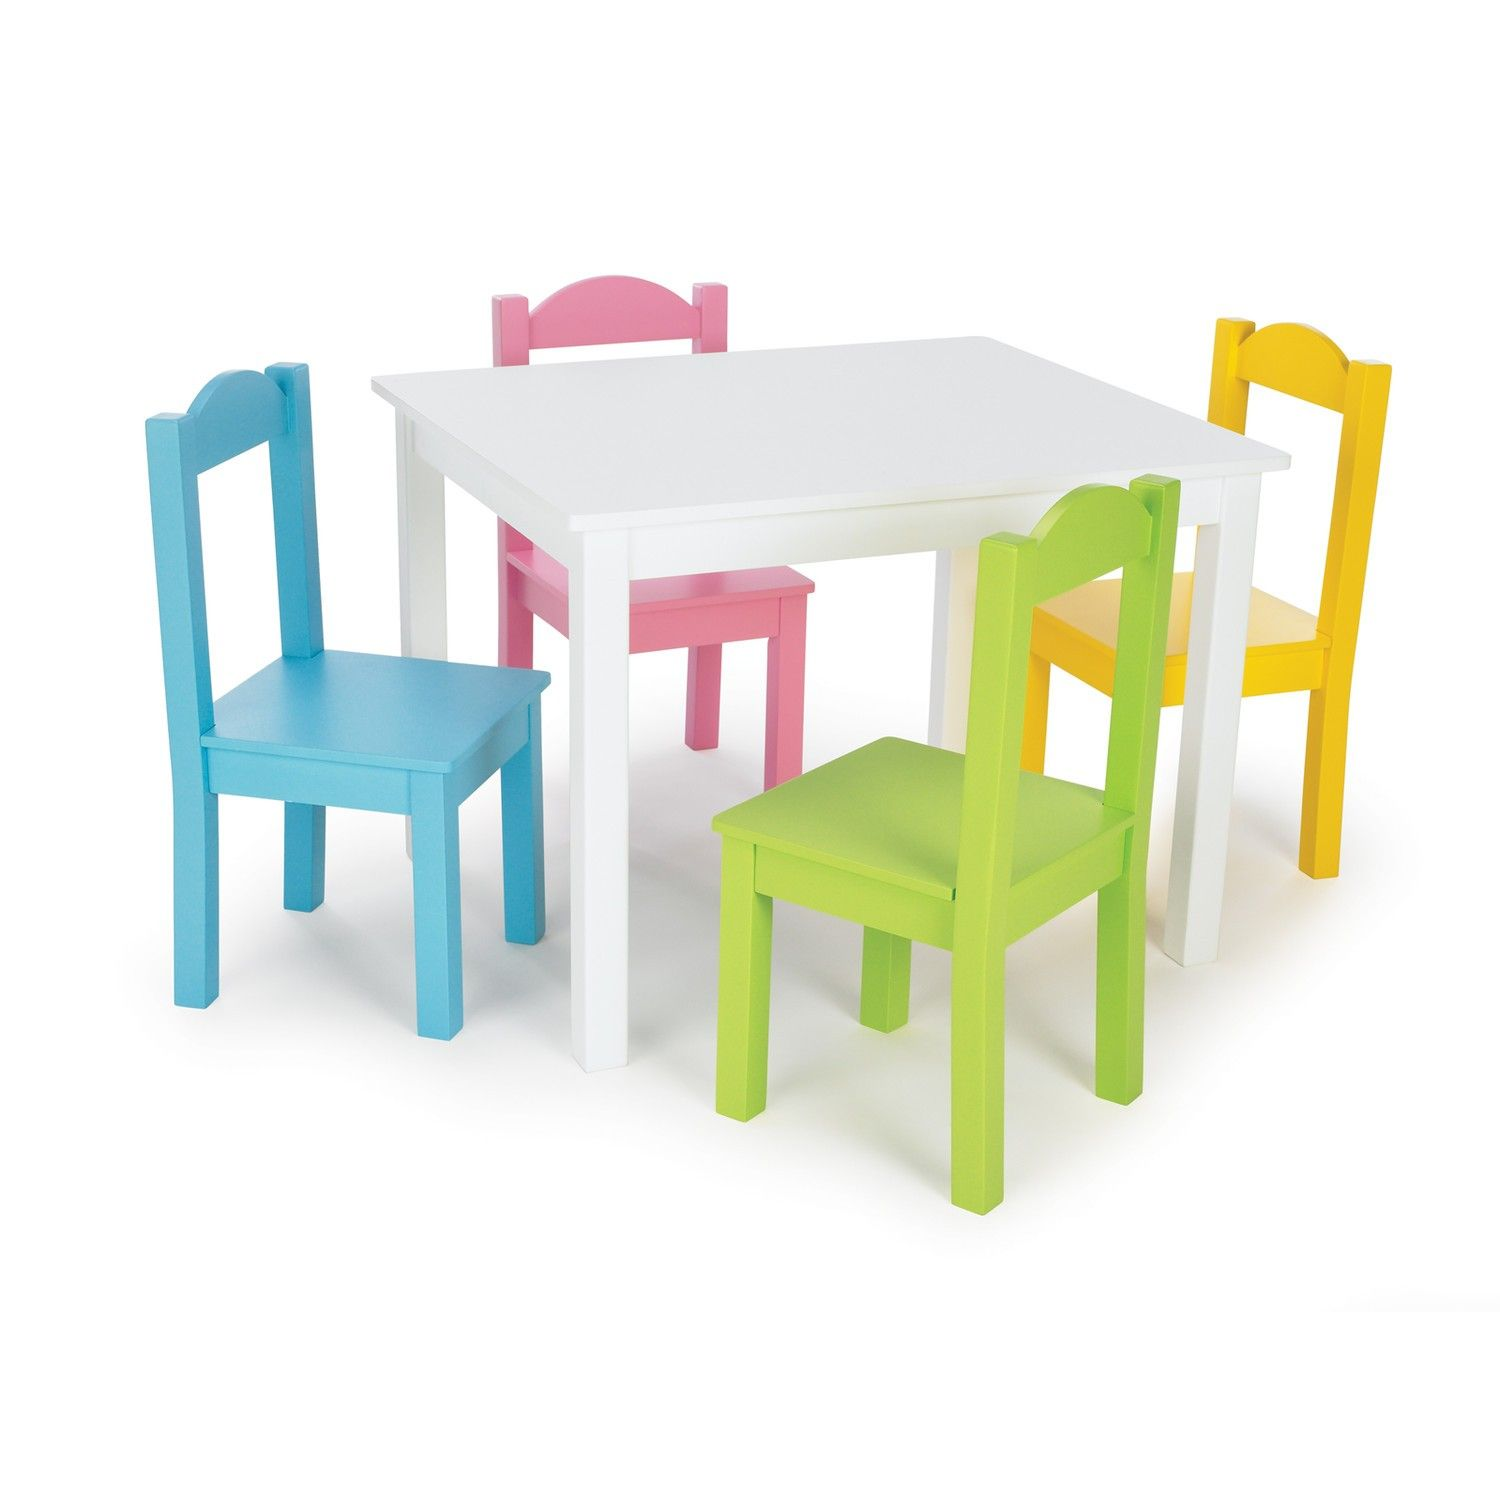 Best Table And Chairs For Toddler kids table chair sets walmartcom 50 100 Furniture Kids Room Rectangle White Painted Wooden Table For Four Decor With Colorful Chairs Childrens Wooden